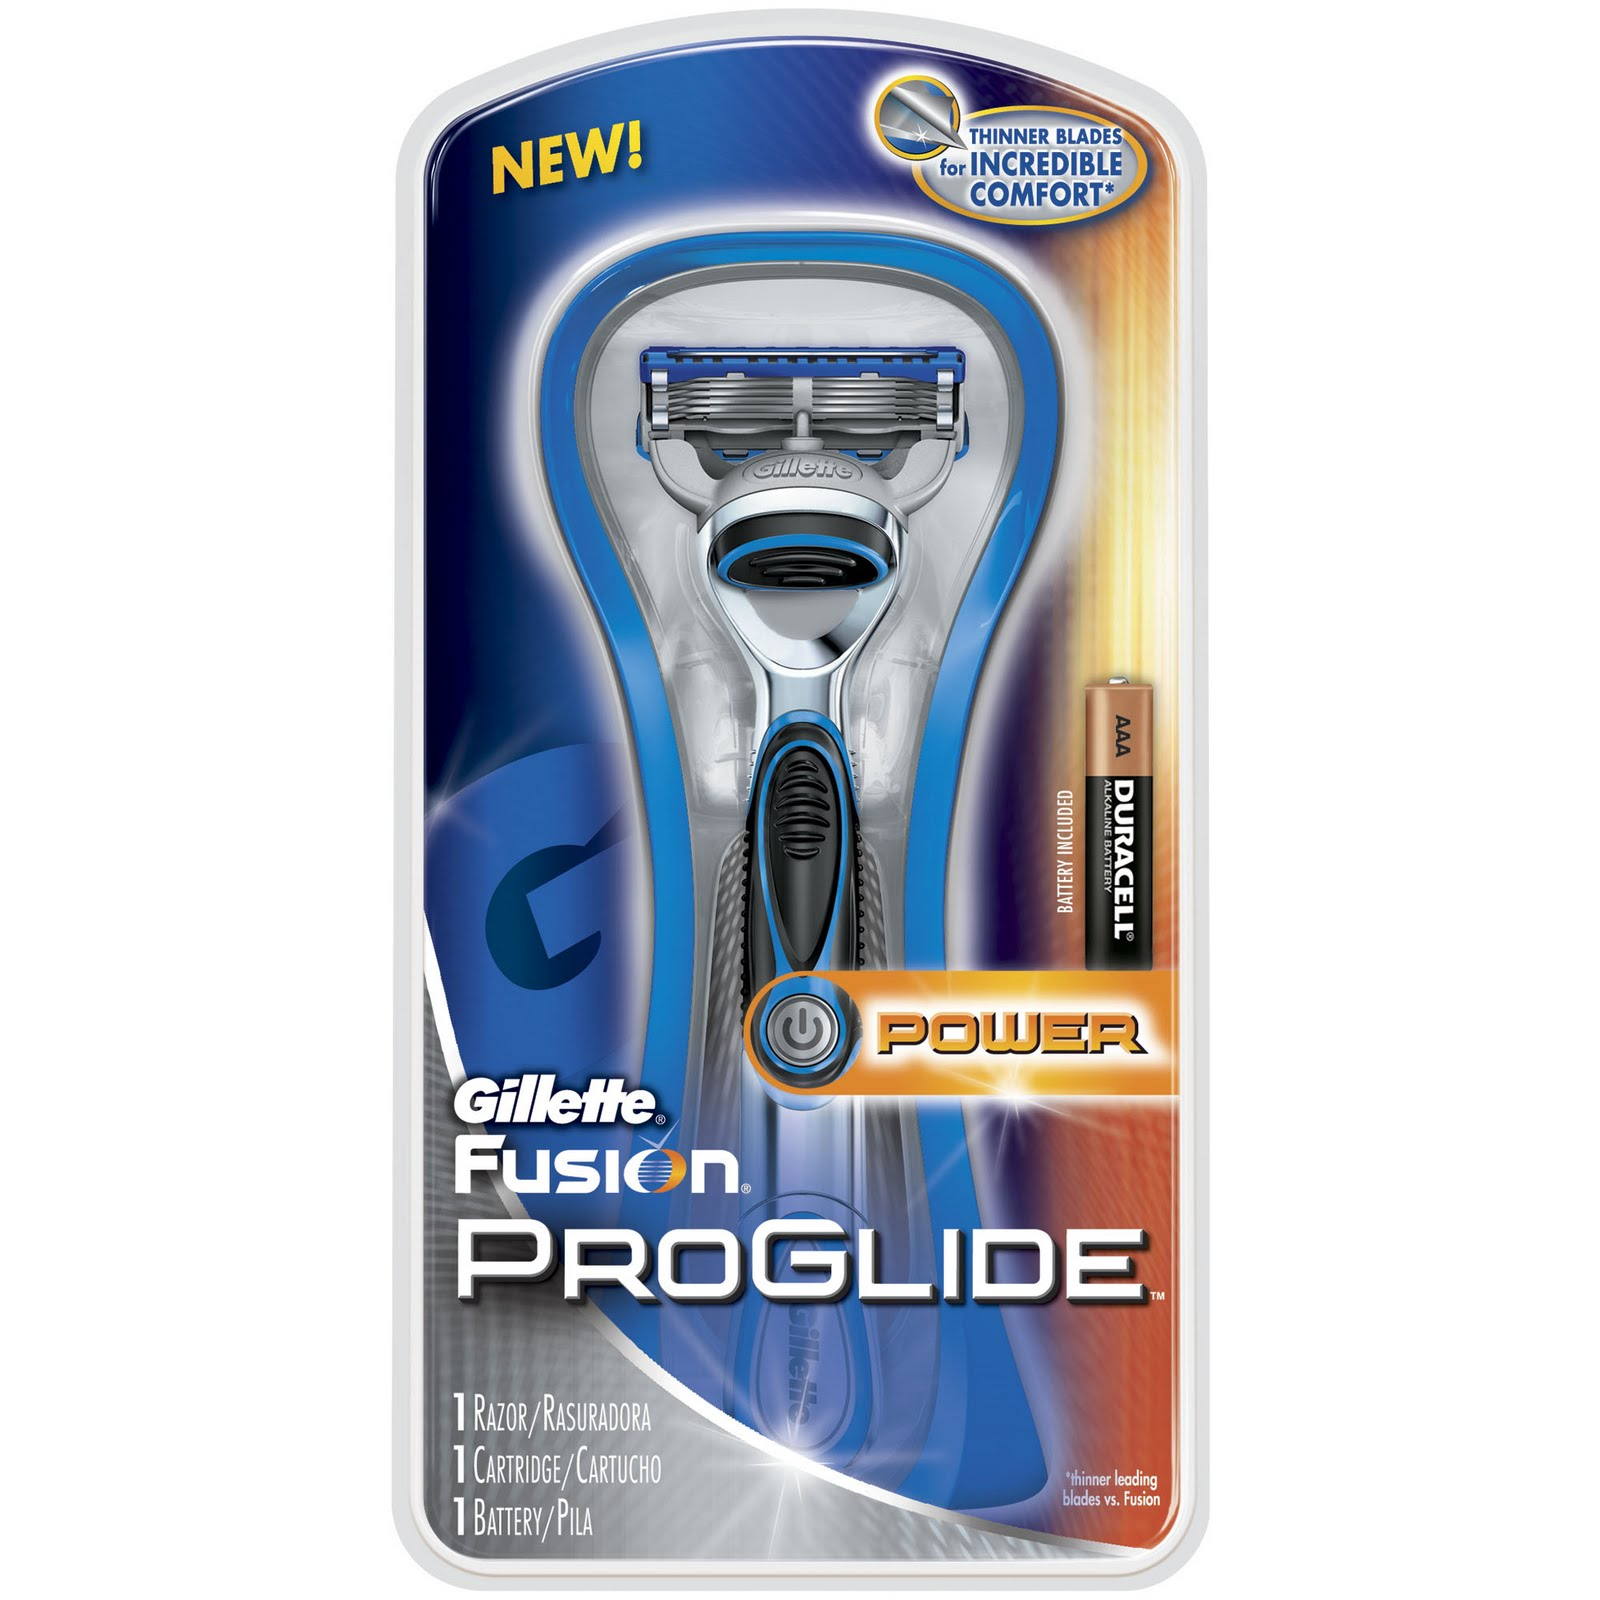 free gillette fusion proglide razors apps directories. Black Bedroom Furniture Sets. Home Design Ideas